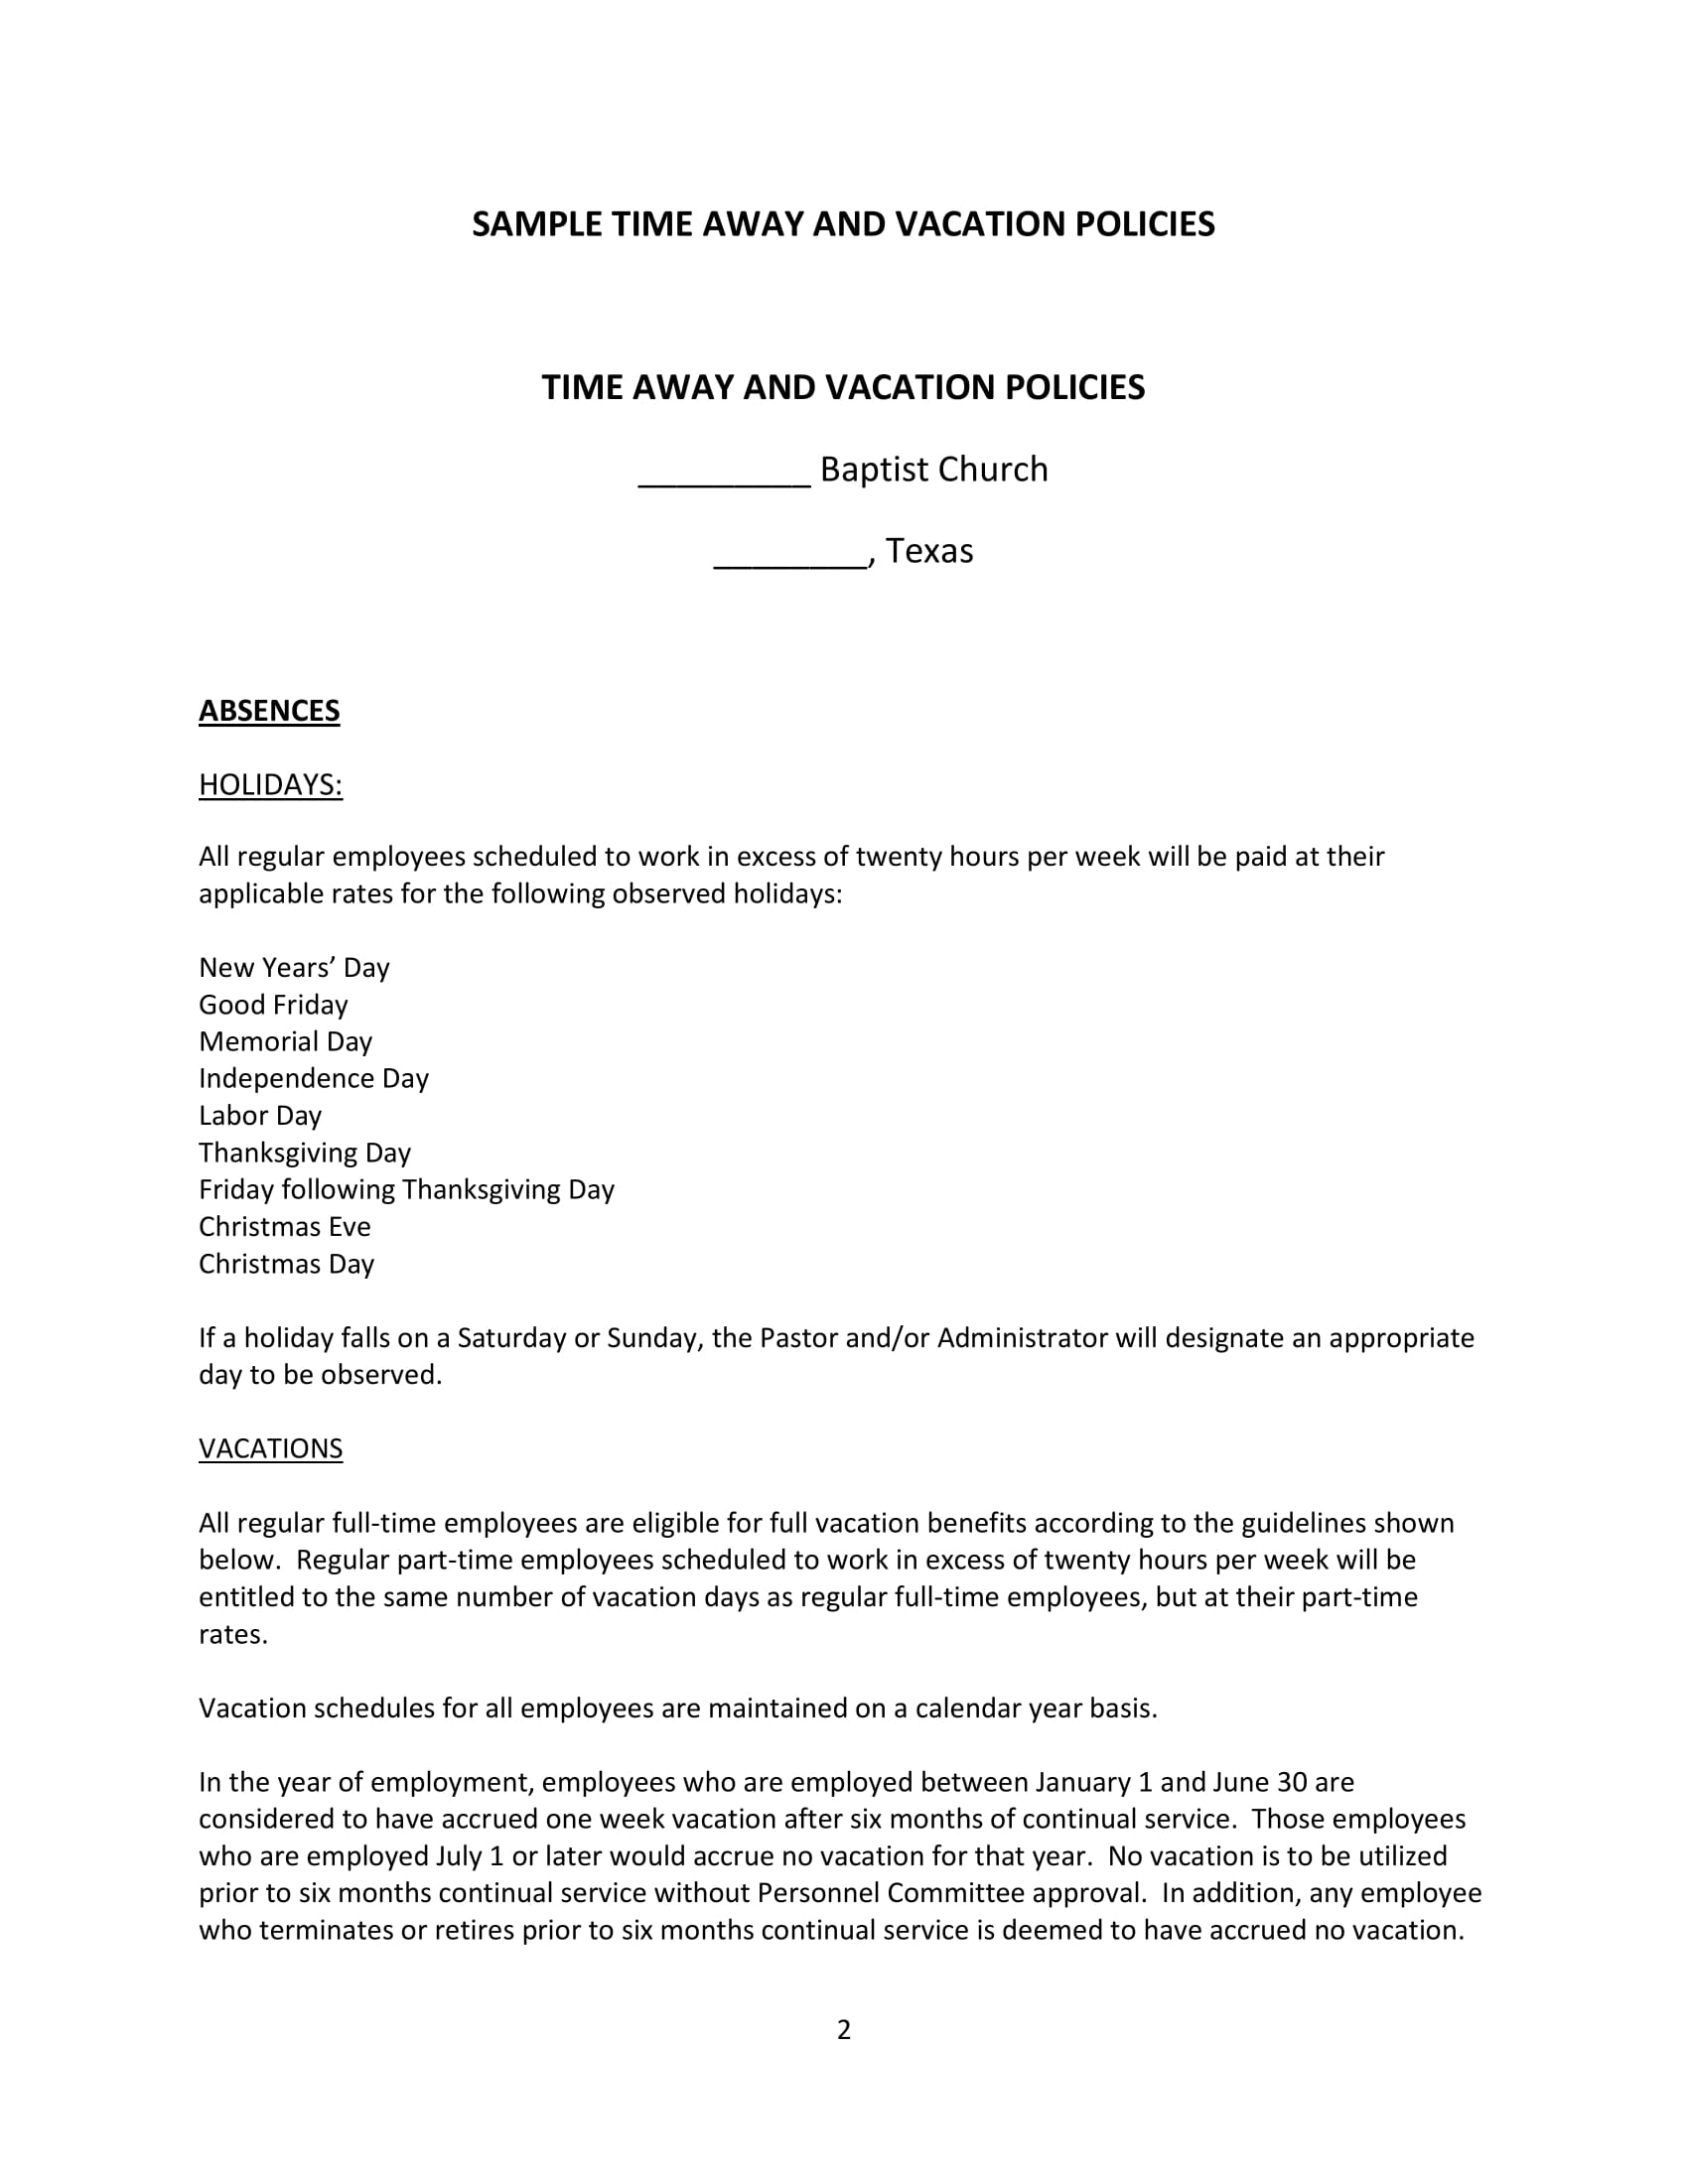 sample time away and vacation policies